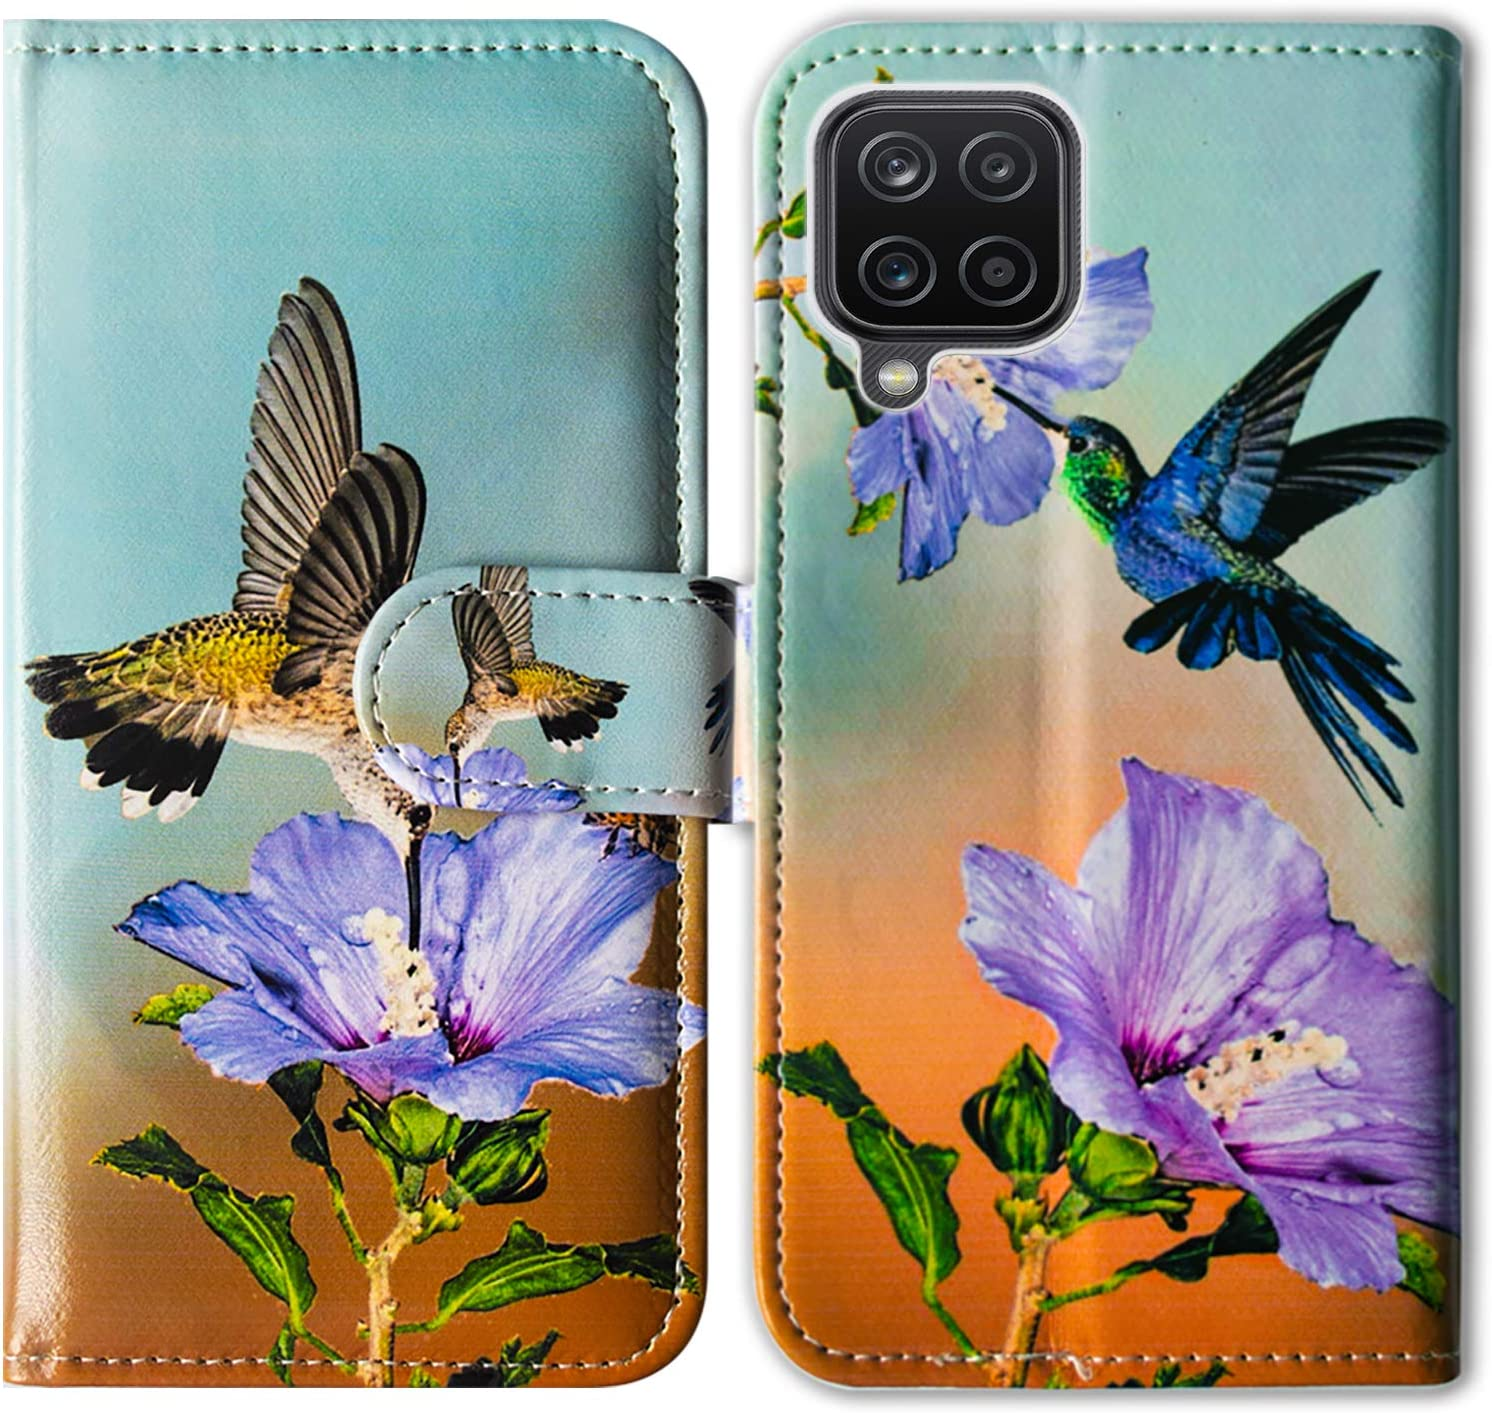 Galaxy A12 Case,Bcov Hummingbird Purple Flower Leather Flip Phone Case Wallet Cover with Card Slot Holder Kickstand for Samsung Galaxy A12 2021